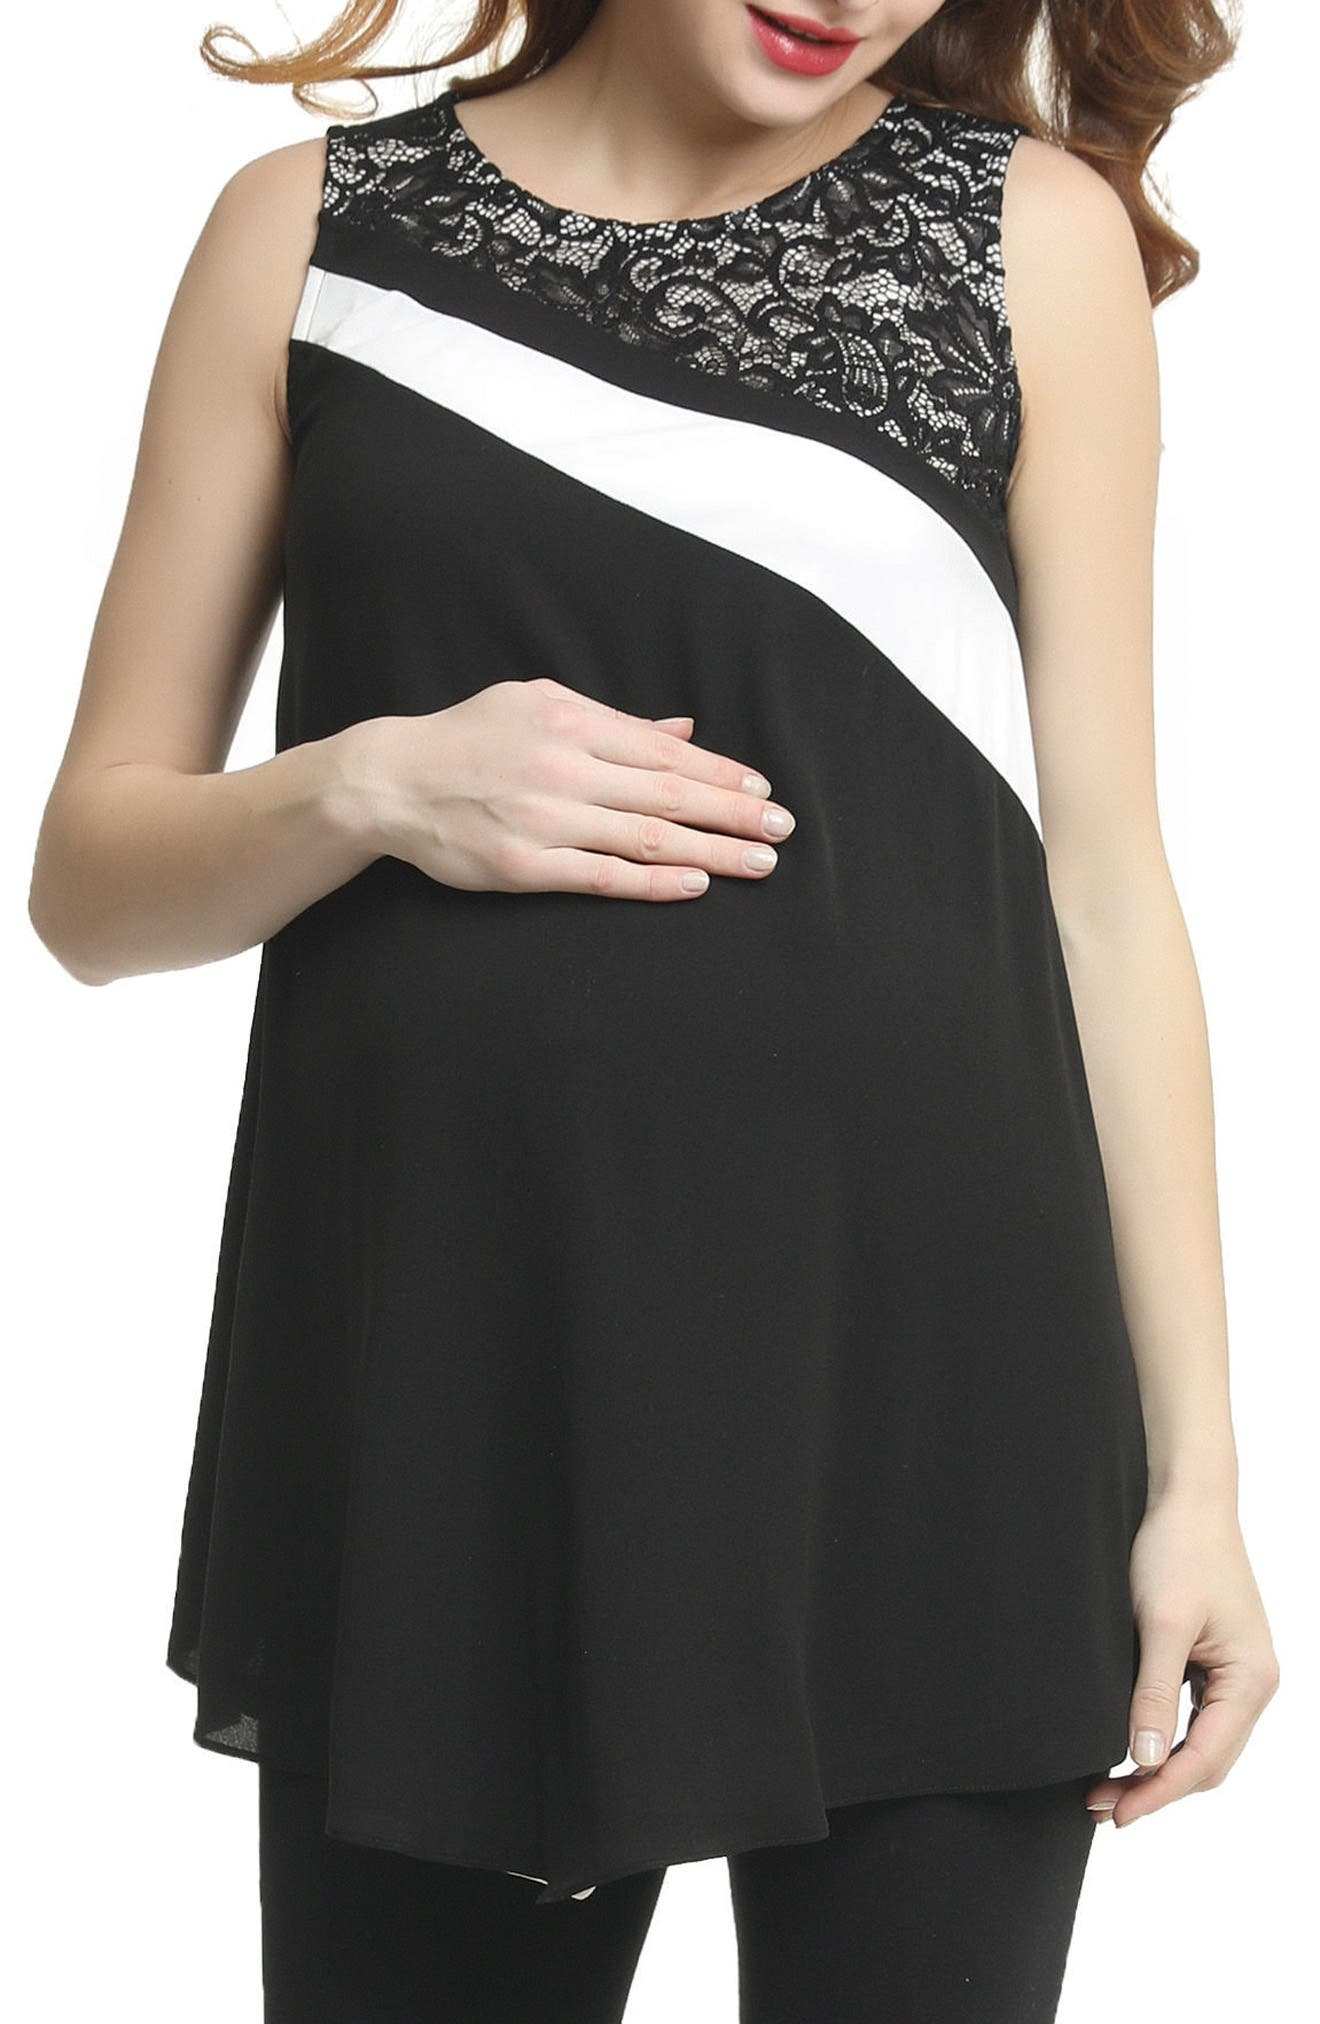 Bonnie Lace Accent Belted Maternity Top,                             Main thumbnail 1, color,                             BLACK/ WHITE